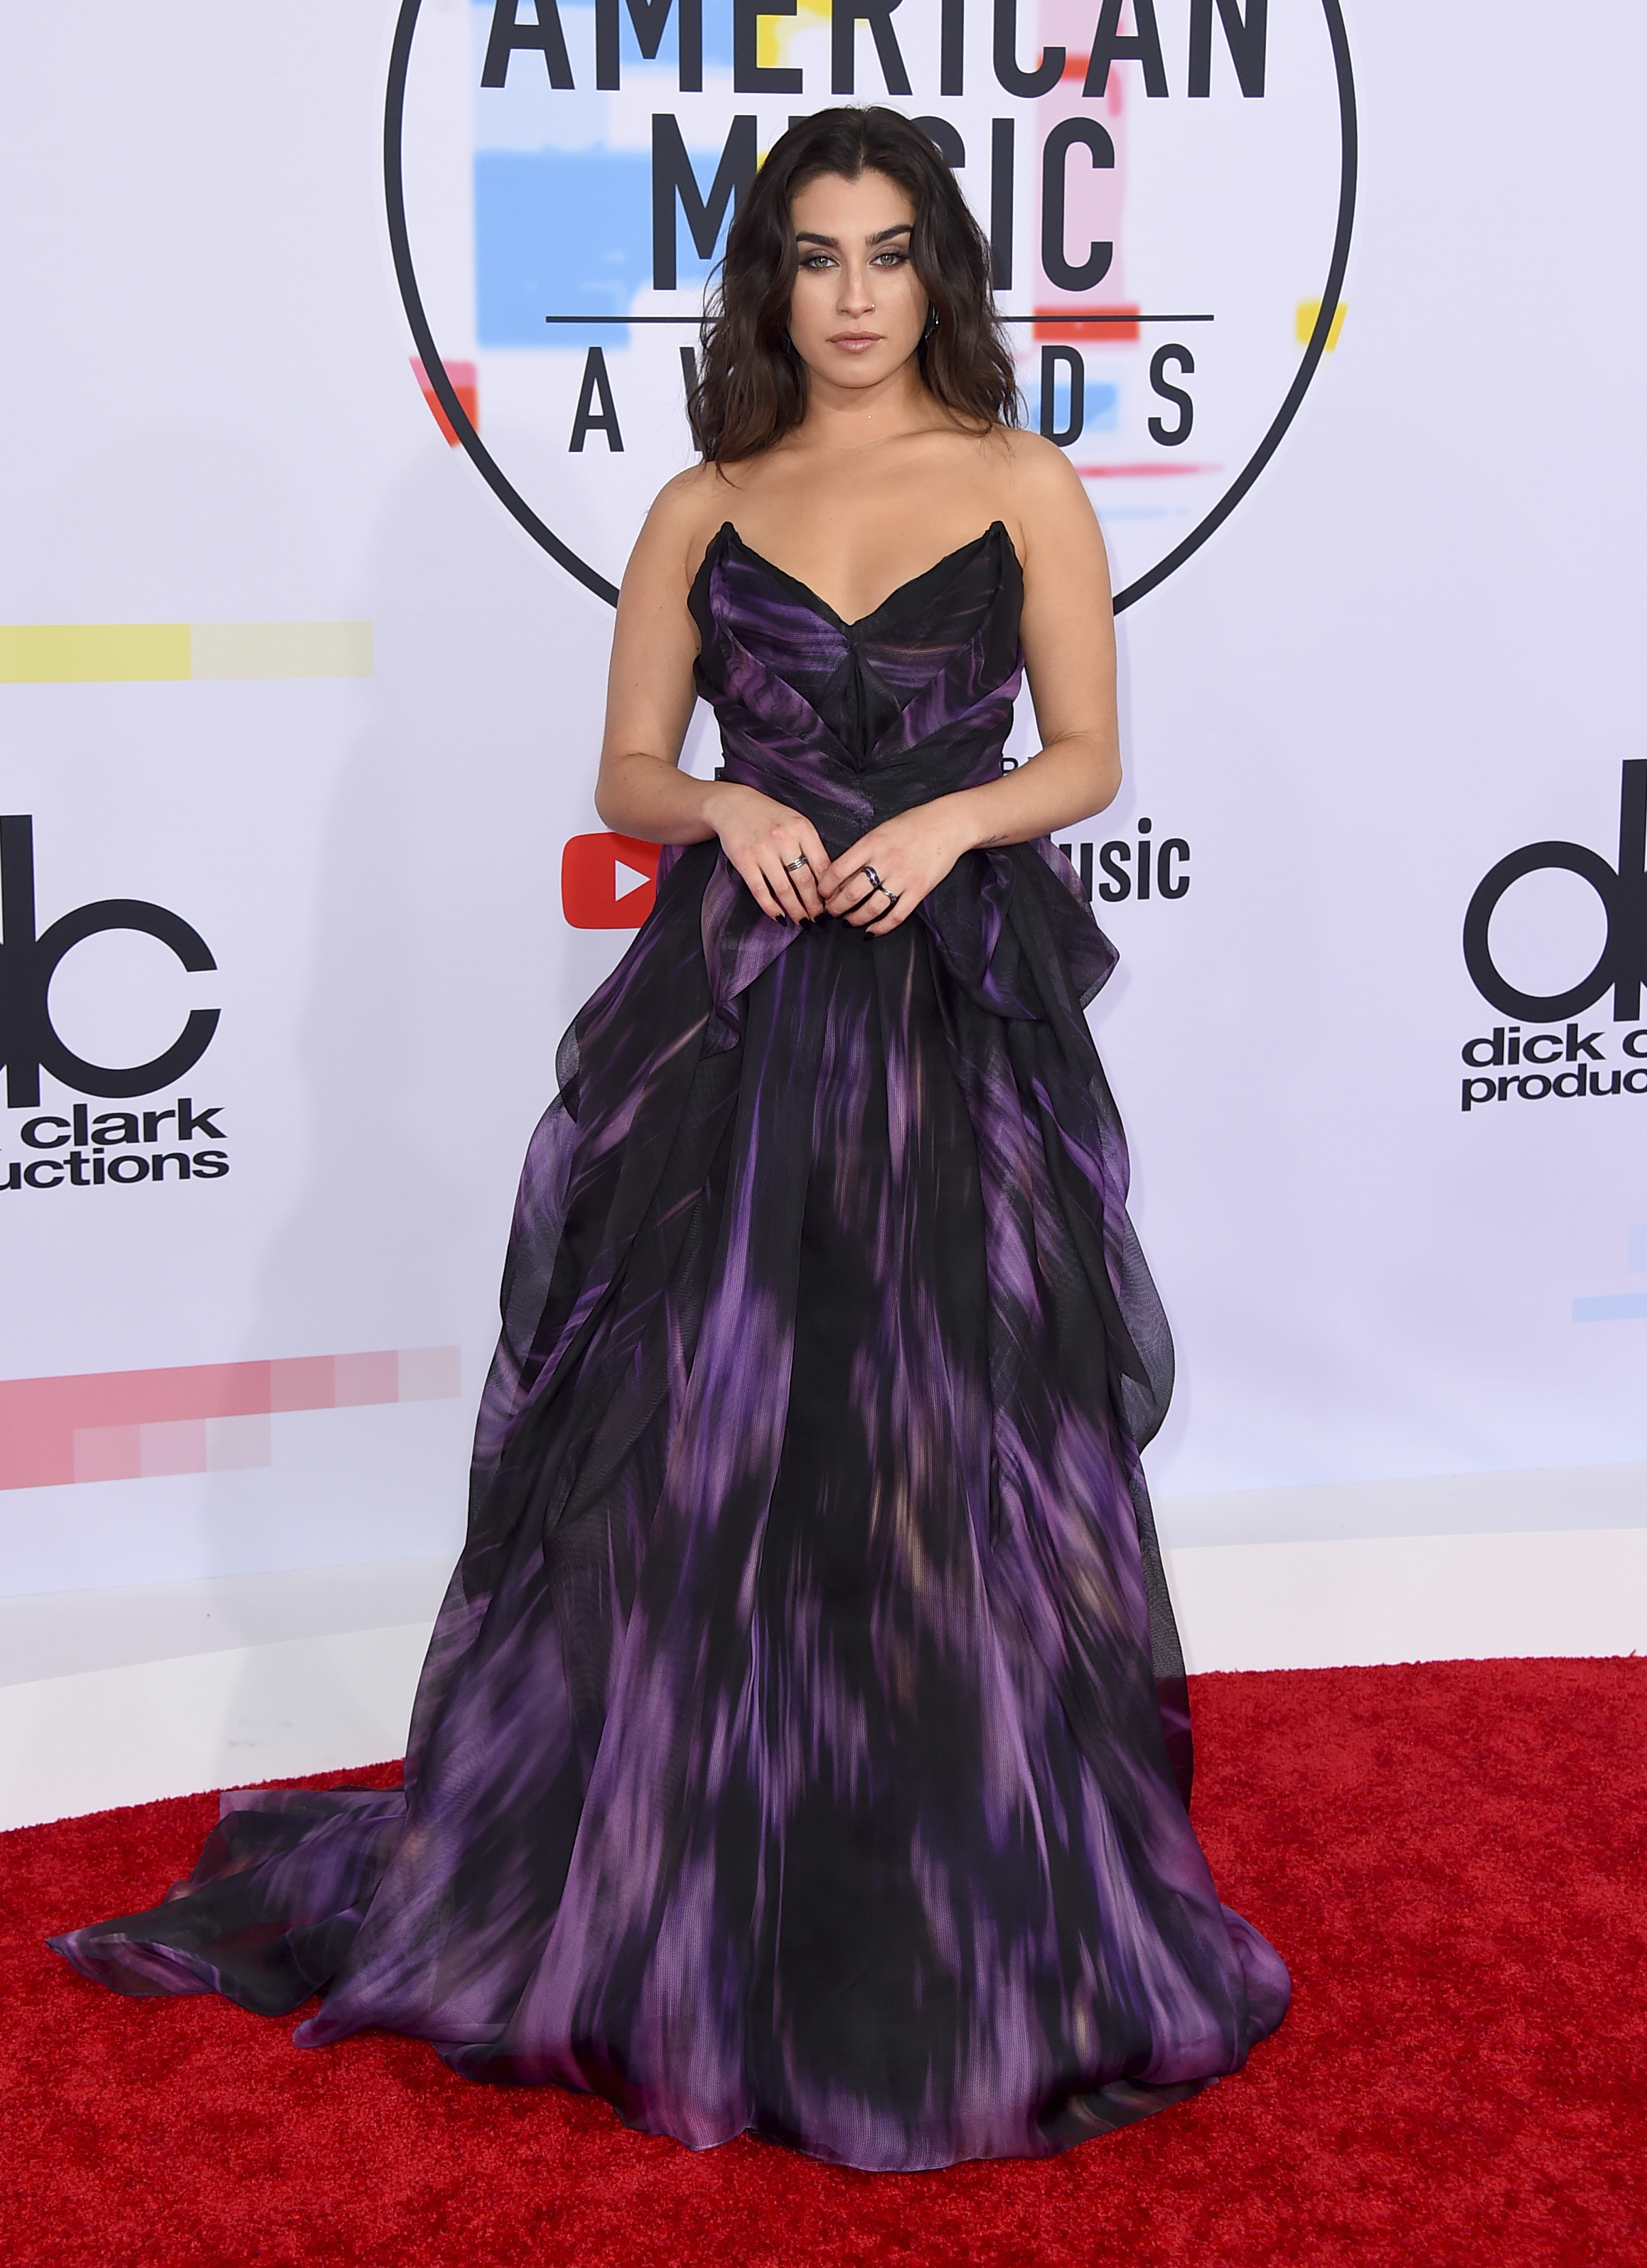 "<div class=""meta image-caption""><div class=""origin-logo origin-image none""><span>none</span></div><span class=""caption-text"">Lauren Jauregui arrives at the American Music Awards on Tuesday, Oct. 9, 2018, at the Microsoft Theater in Los Angeles. (Jordan Strauss/Invision/AP)</span></div>"